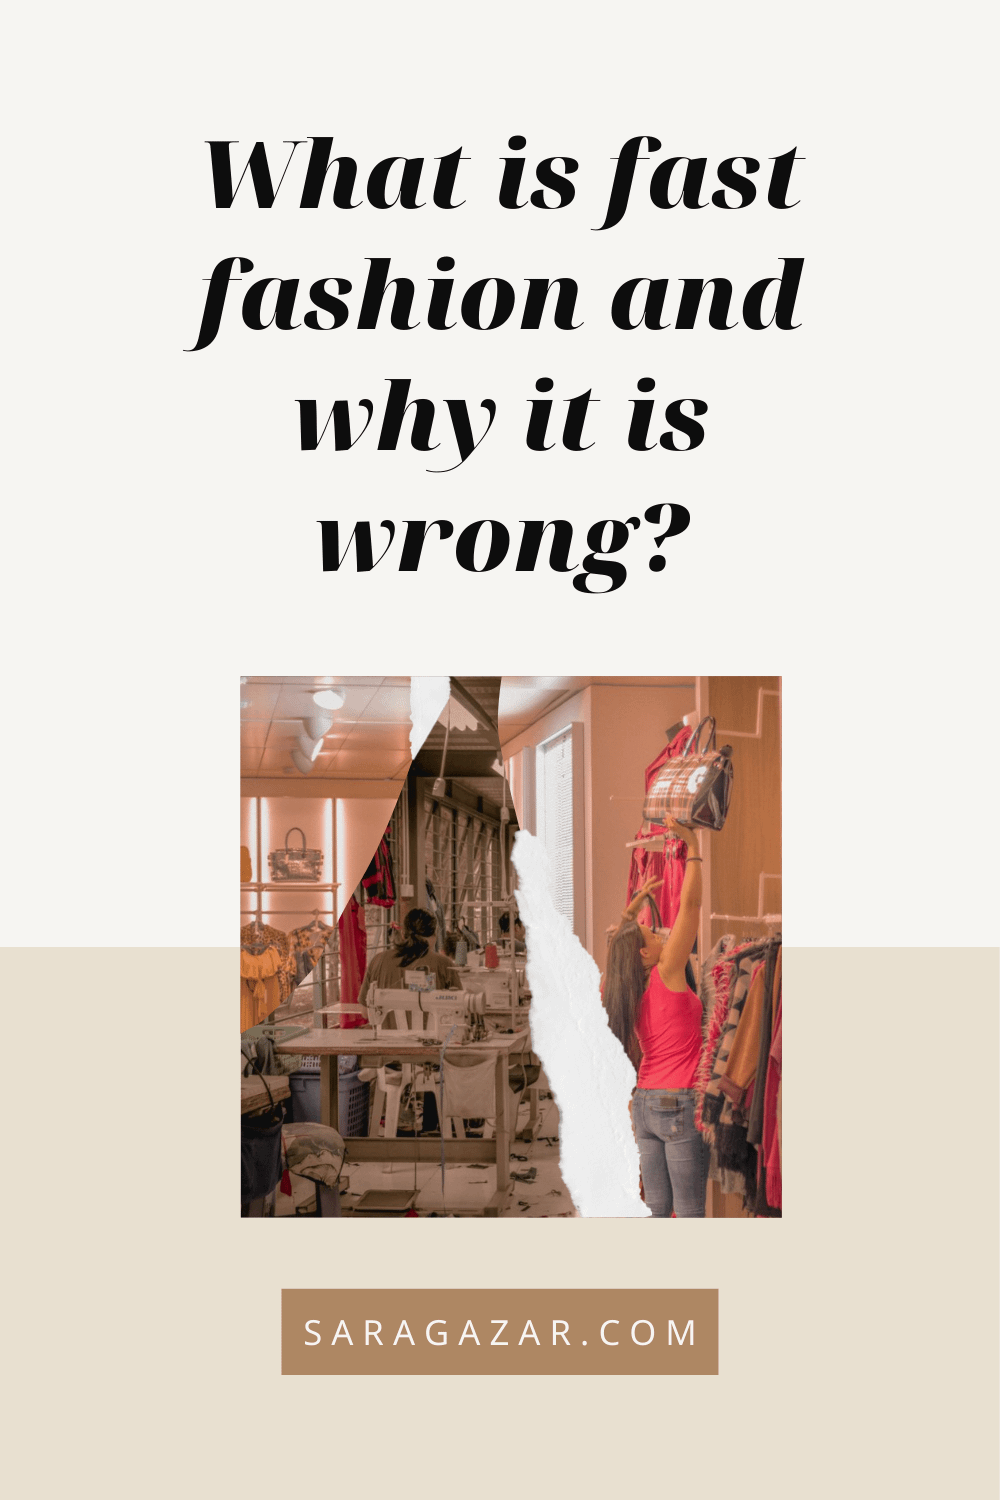 What is fast fashion and why it is horribly wrong?